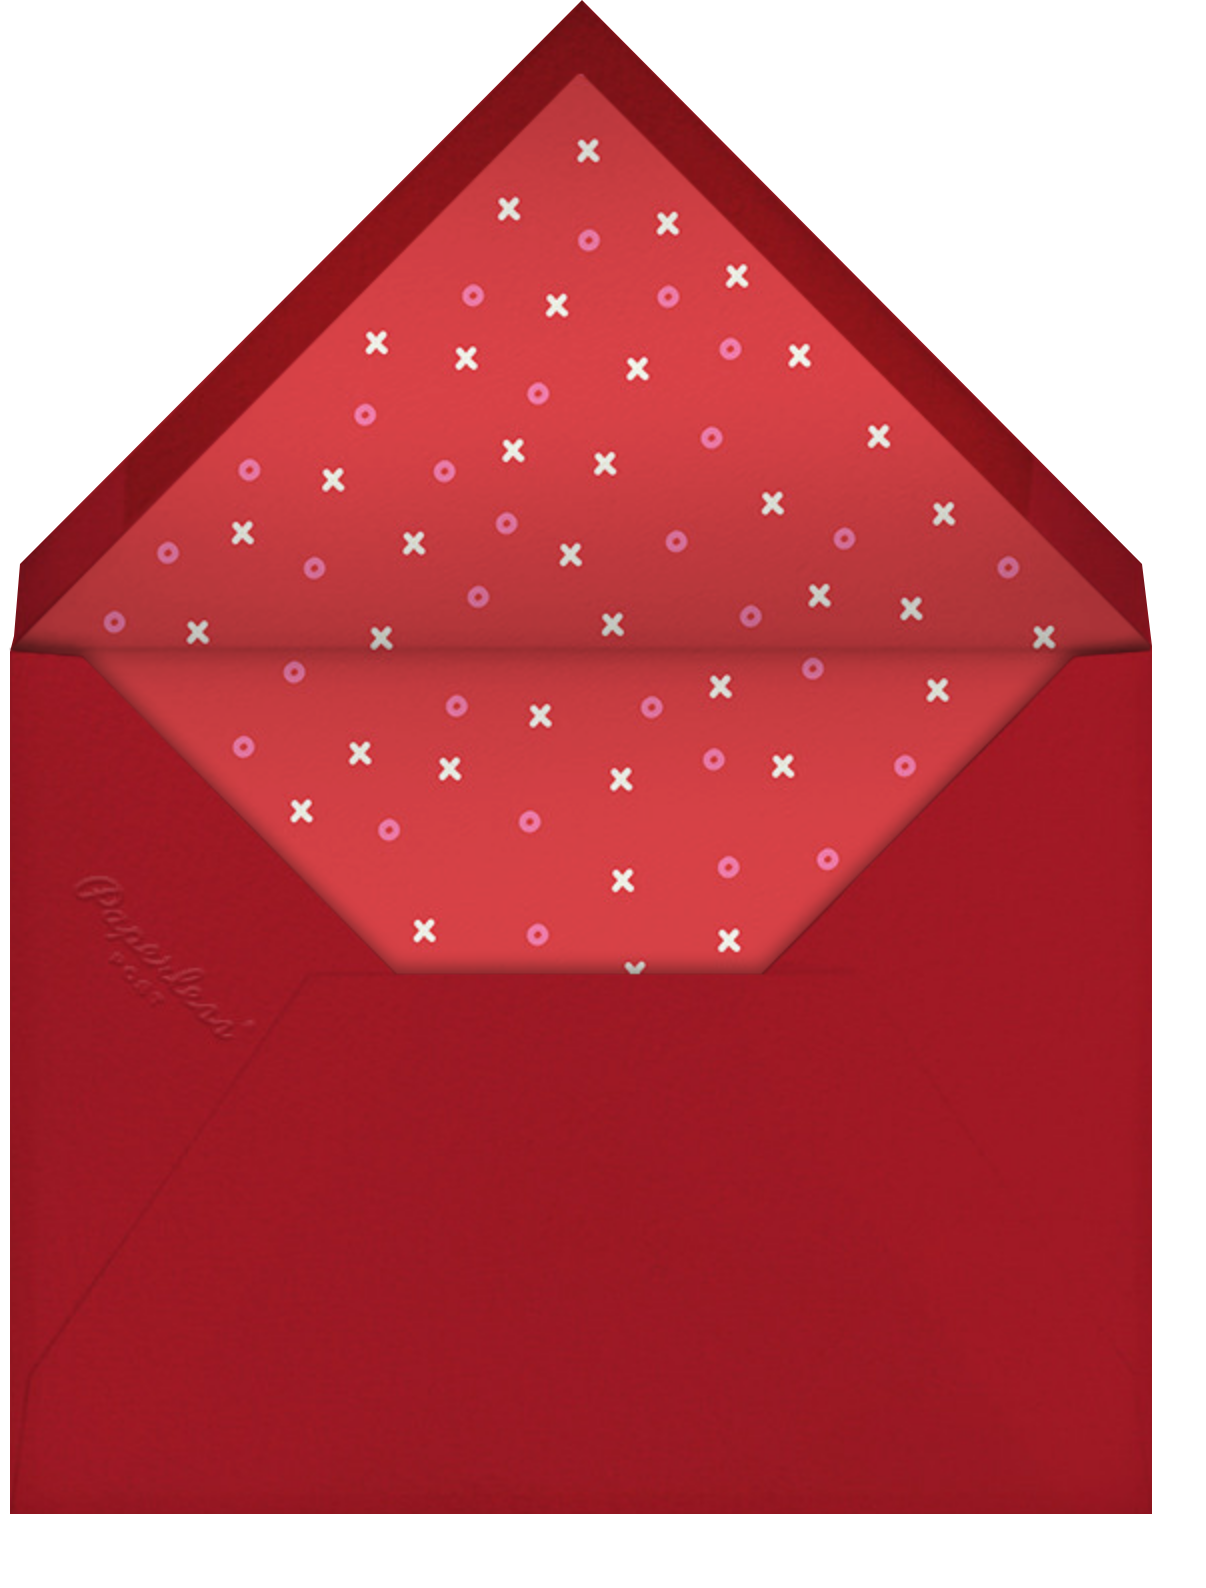 I'm Attracted 2 U - Paperless Post - Love cards - envelope back